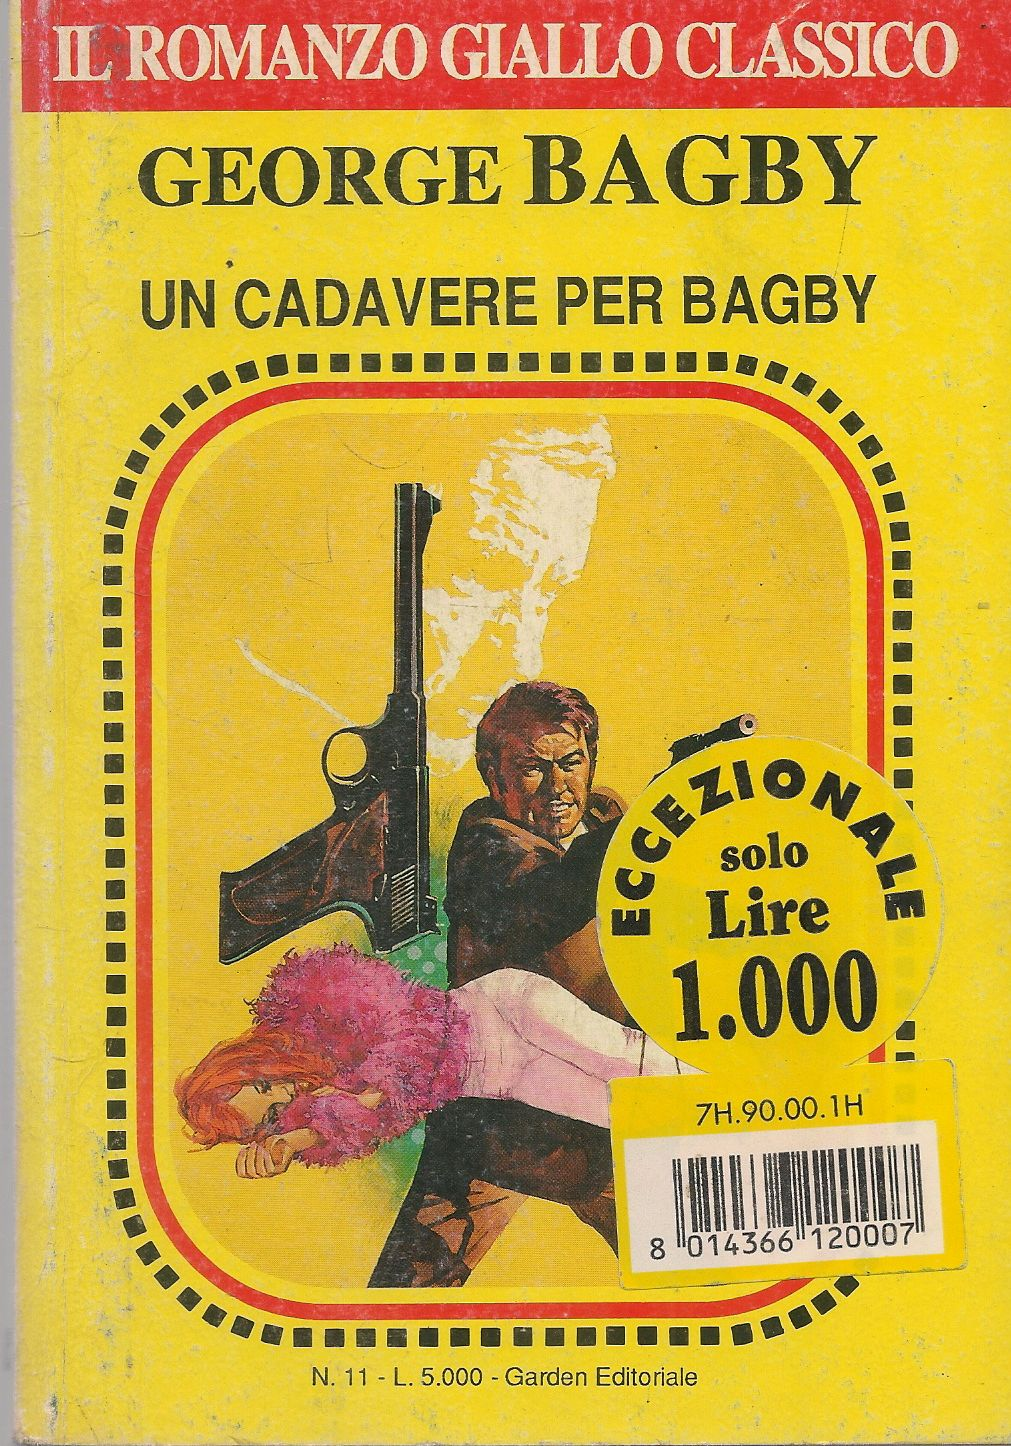 UN CADAVERE PER BAGBY - GEORGE BAGBY